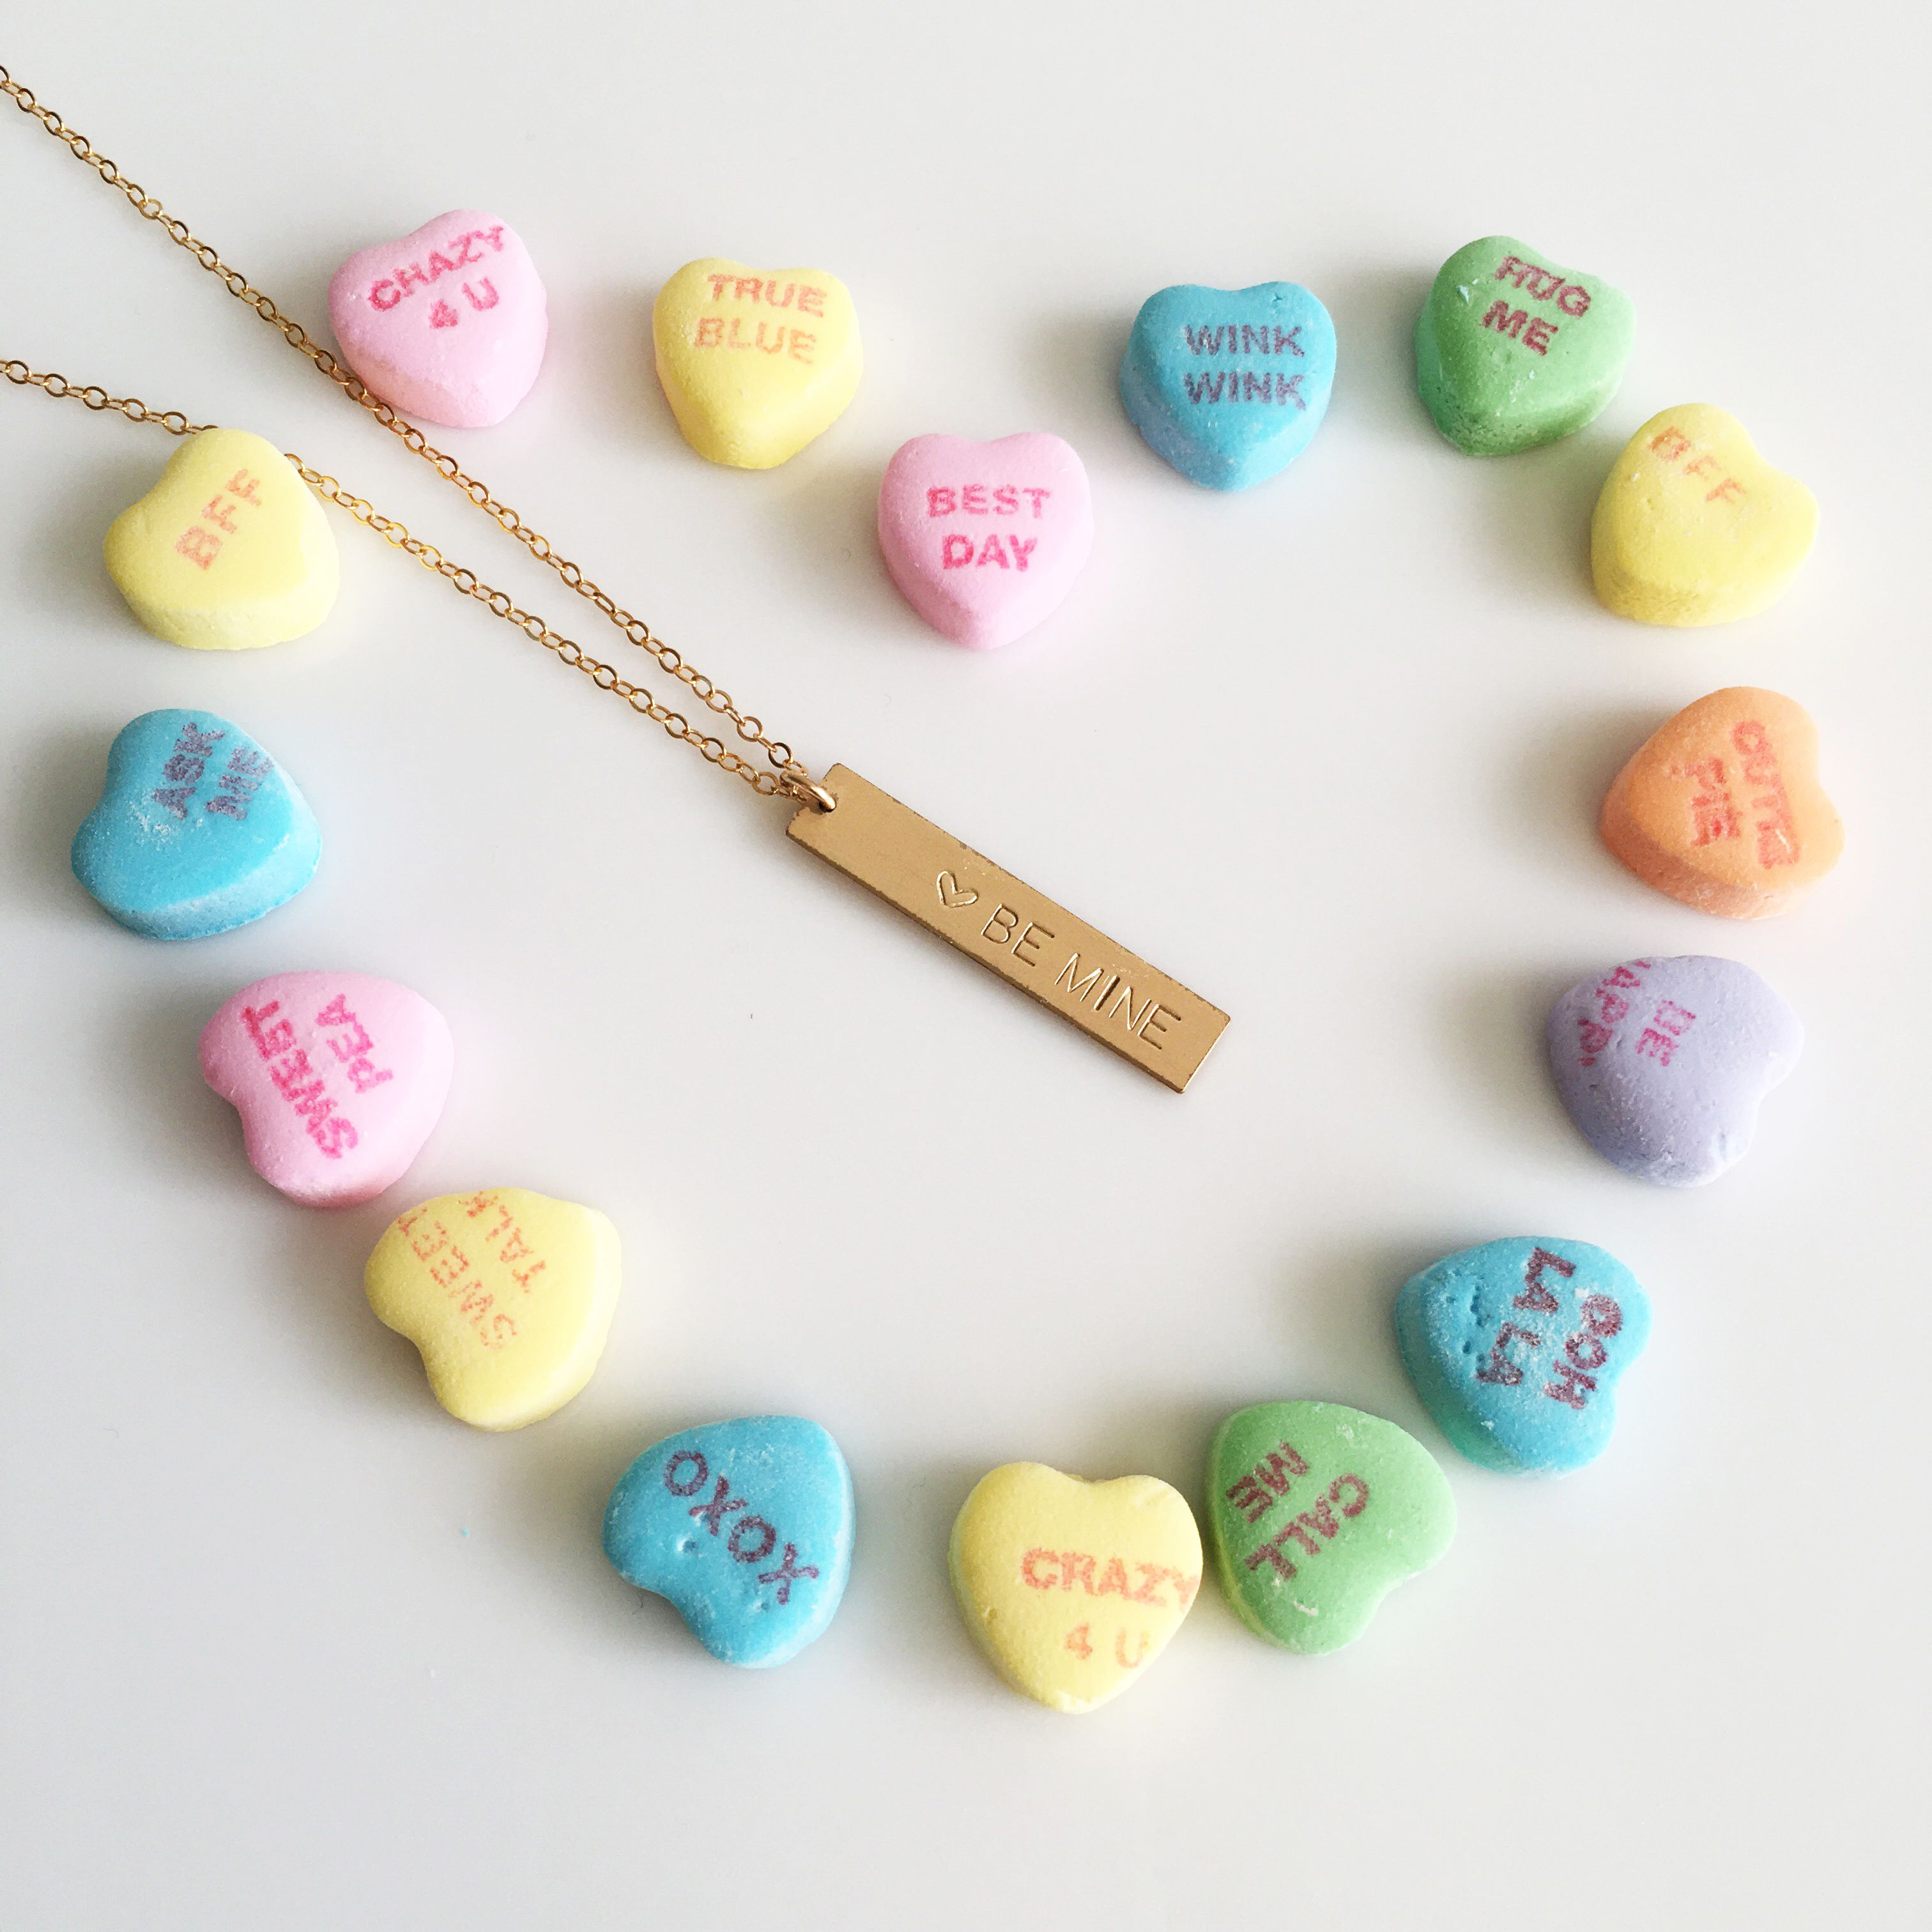 personalized valentine's day jewelry, gifts for her, hand stamped necklace, heart candy, boho jewelry, love necklace, anniversary necklace, wedding jewelry, gypsy jewelry, sweetheart candy, valentine's day, valentines gift.